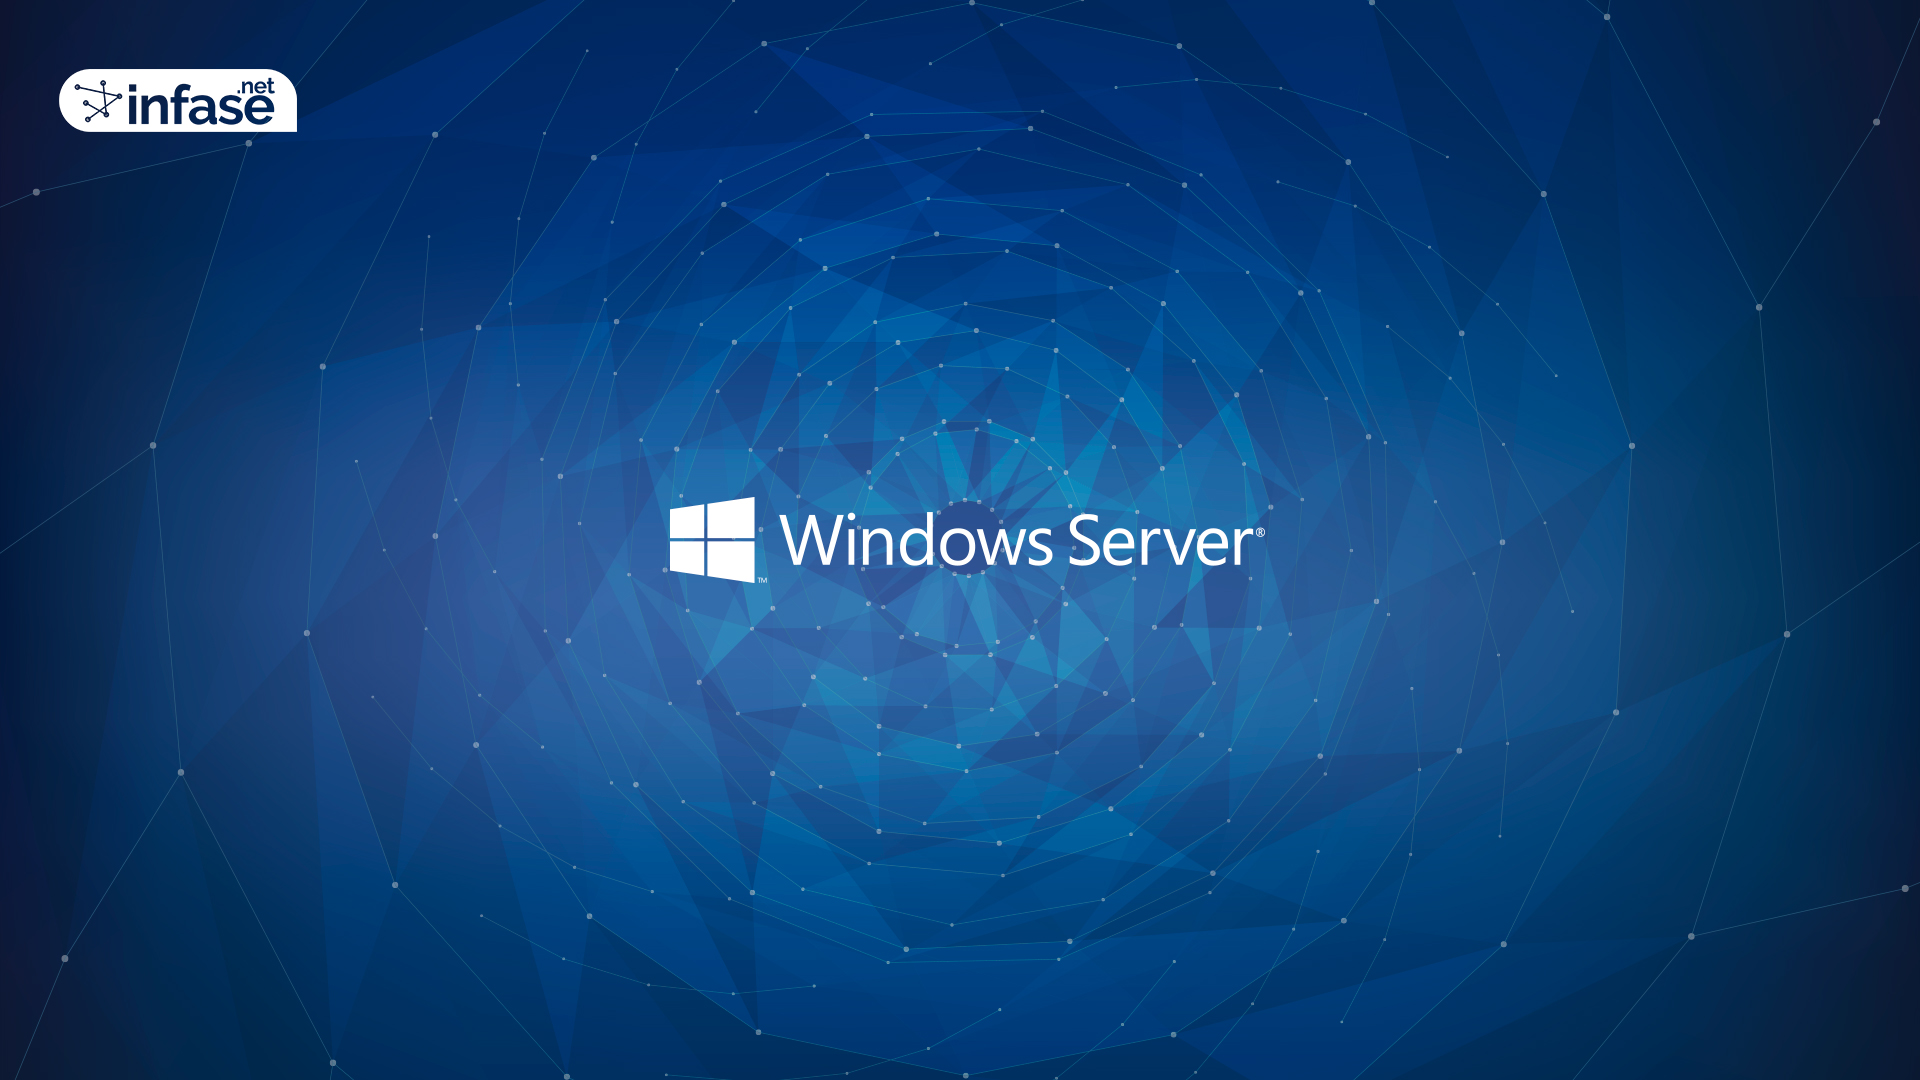 Fondos De Pantalla De Quikis: Fondo De Pantalla Windows Server